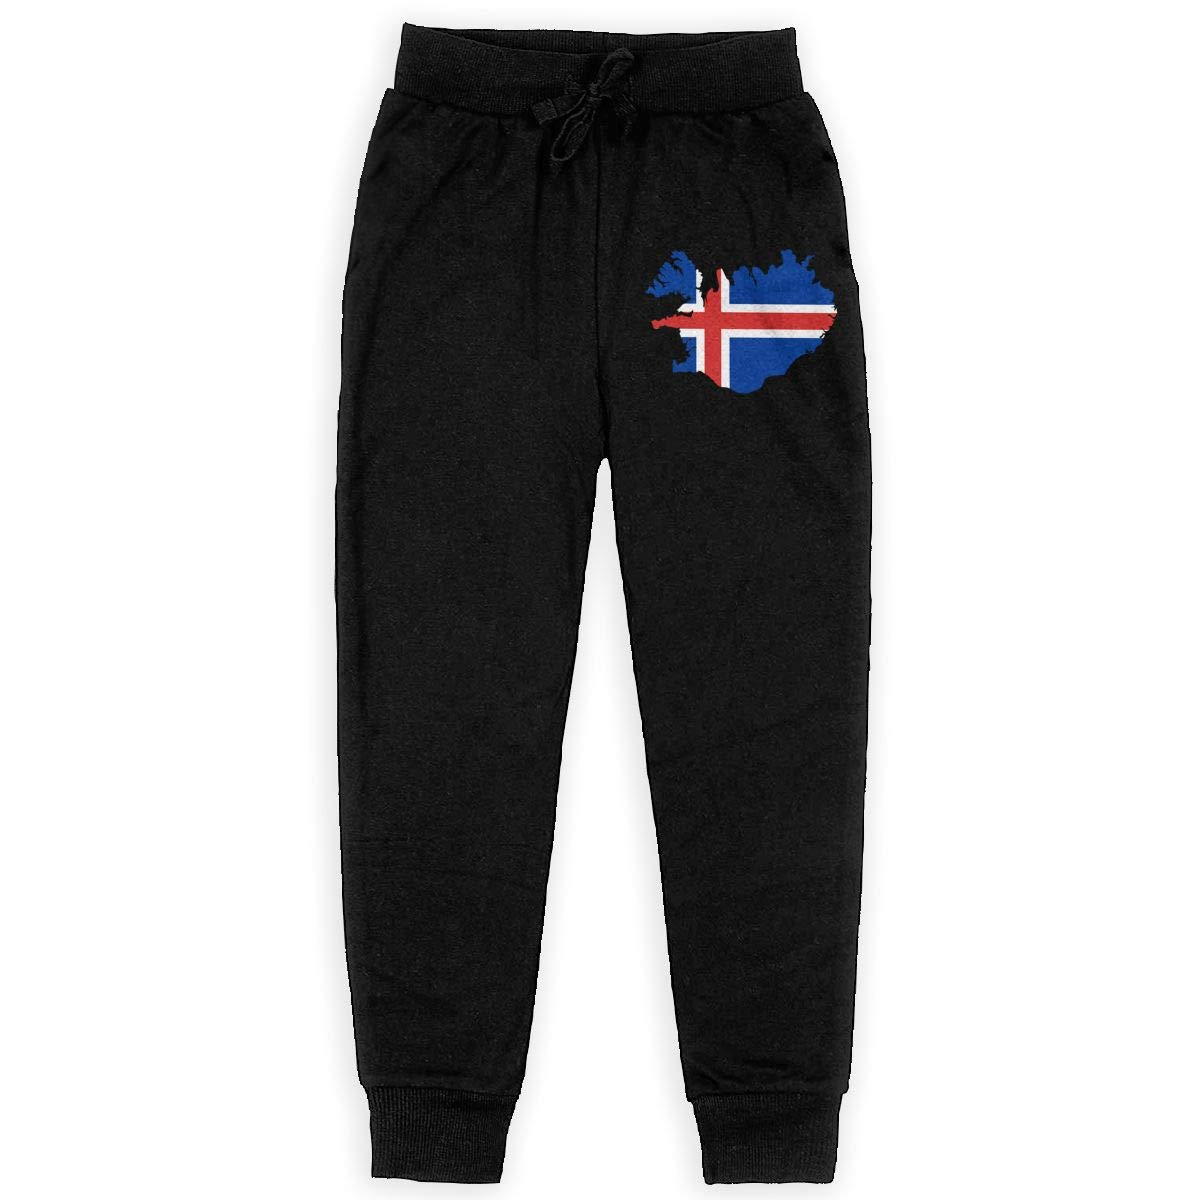 IufnNRJndfu Iceland Boys Athletic Smart Fleece Pant Youth Soft and Cozy Sweatpants